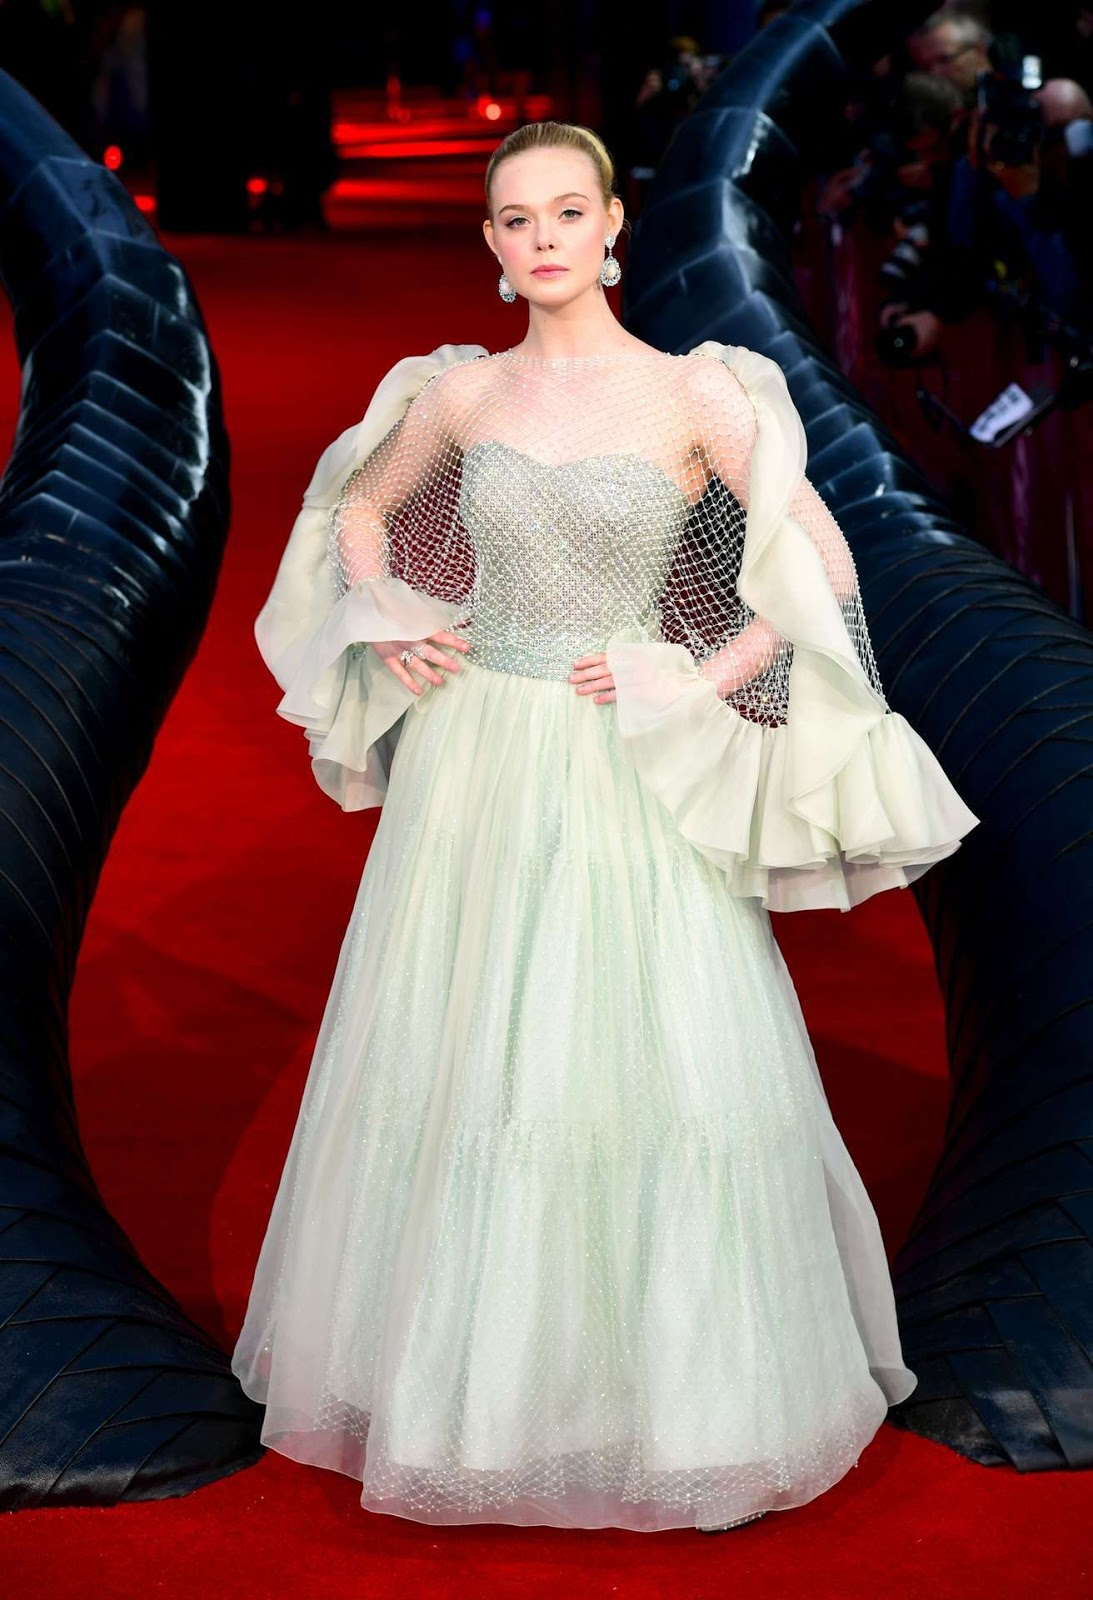 Elle Fanning looks ethereal in a pale green ball gown as she struts down the red carpet at Maleficent: Mistress Of Evil London premiere